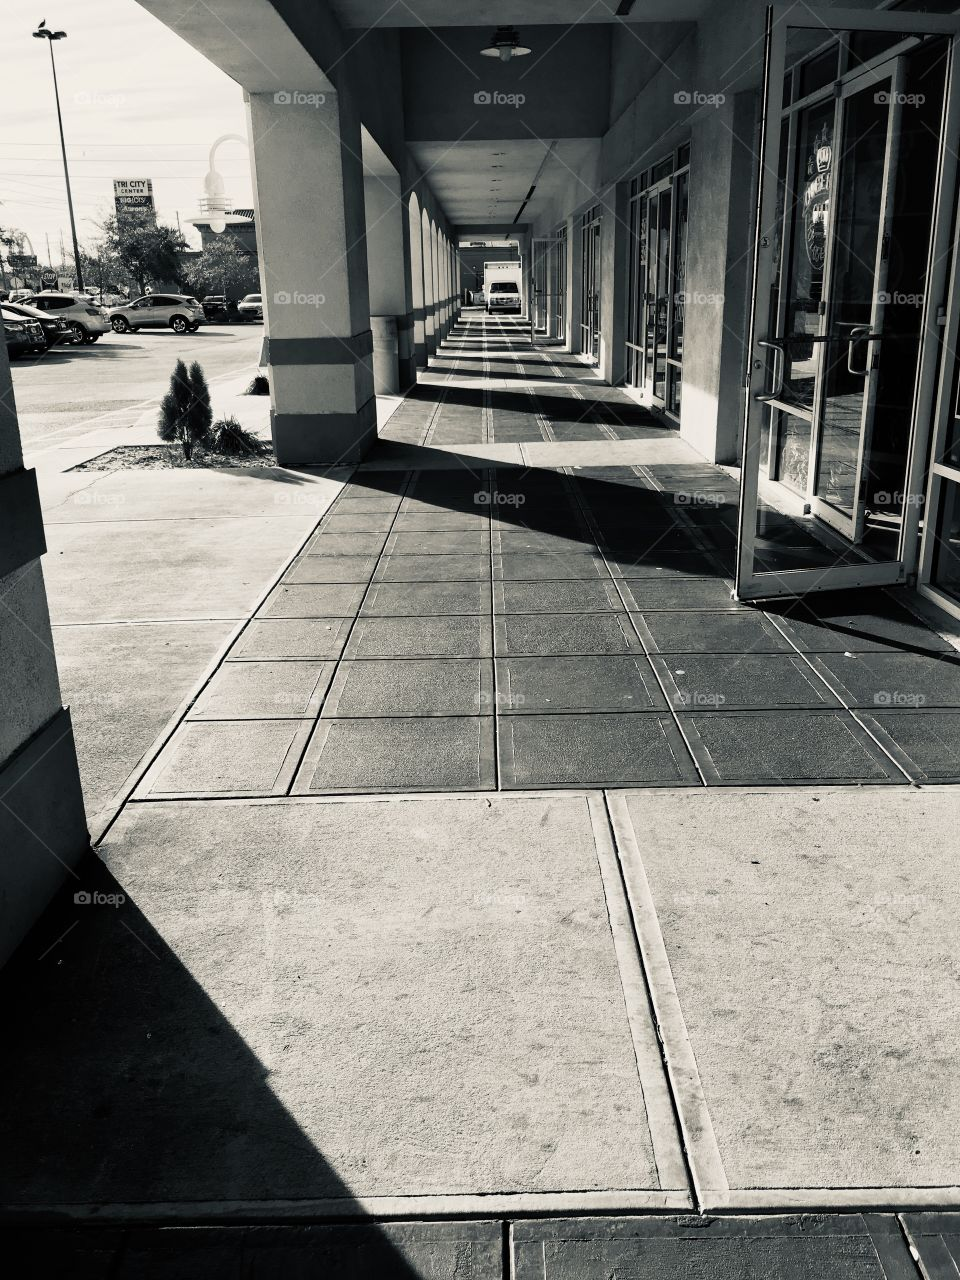 Walkway of lines and shadows in Florida in noir et blanc